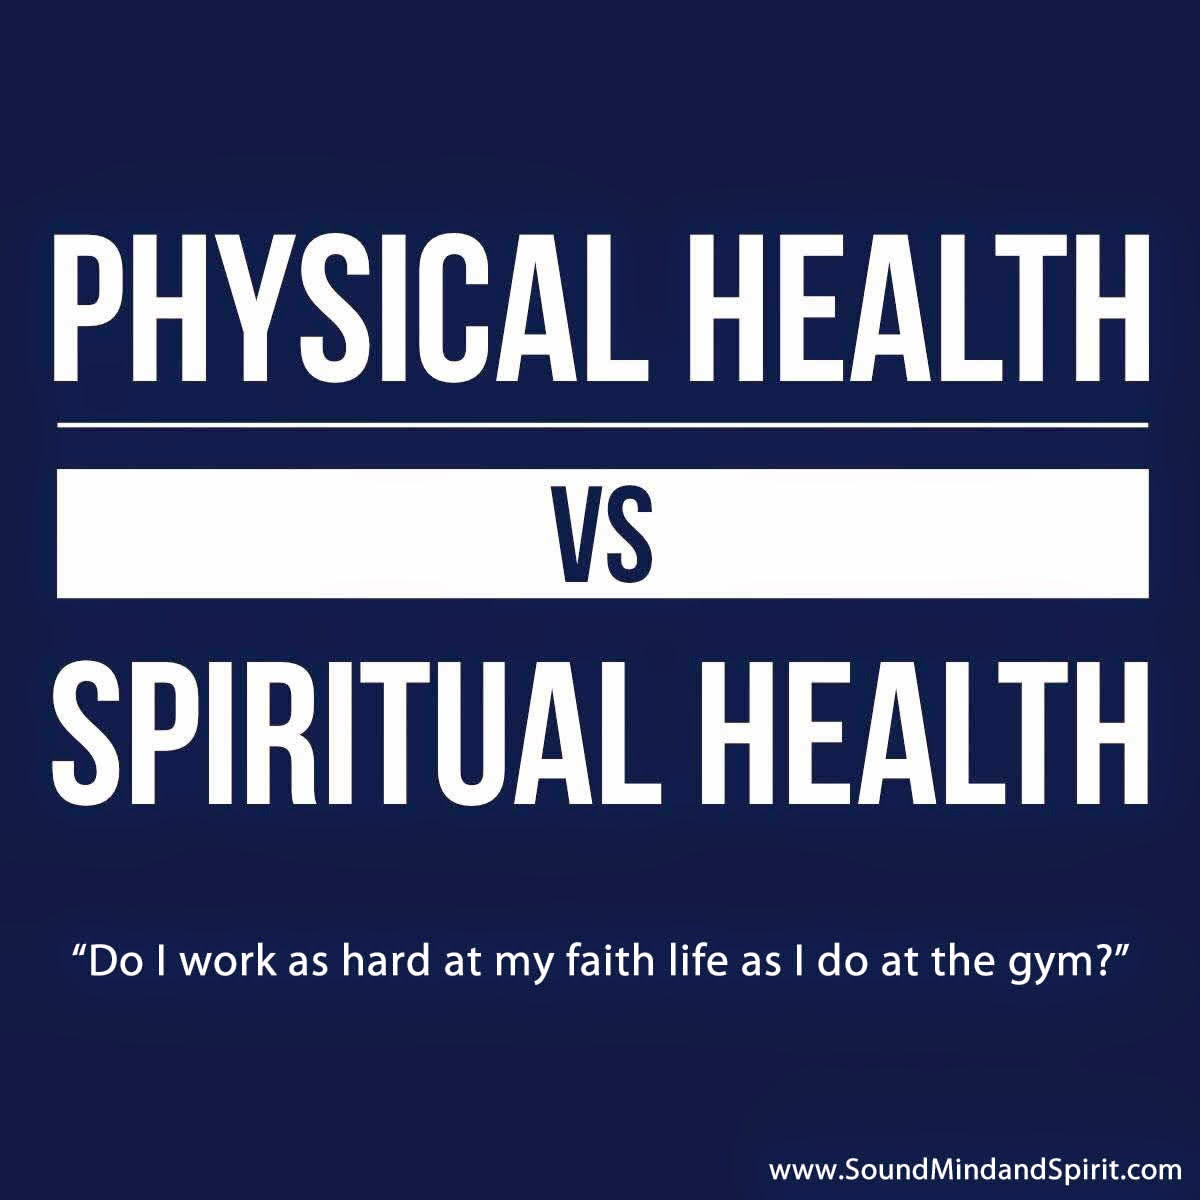 Physical Health vs. Spiritual Health